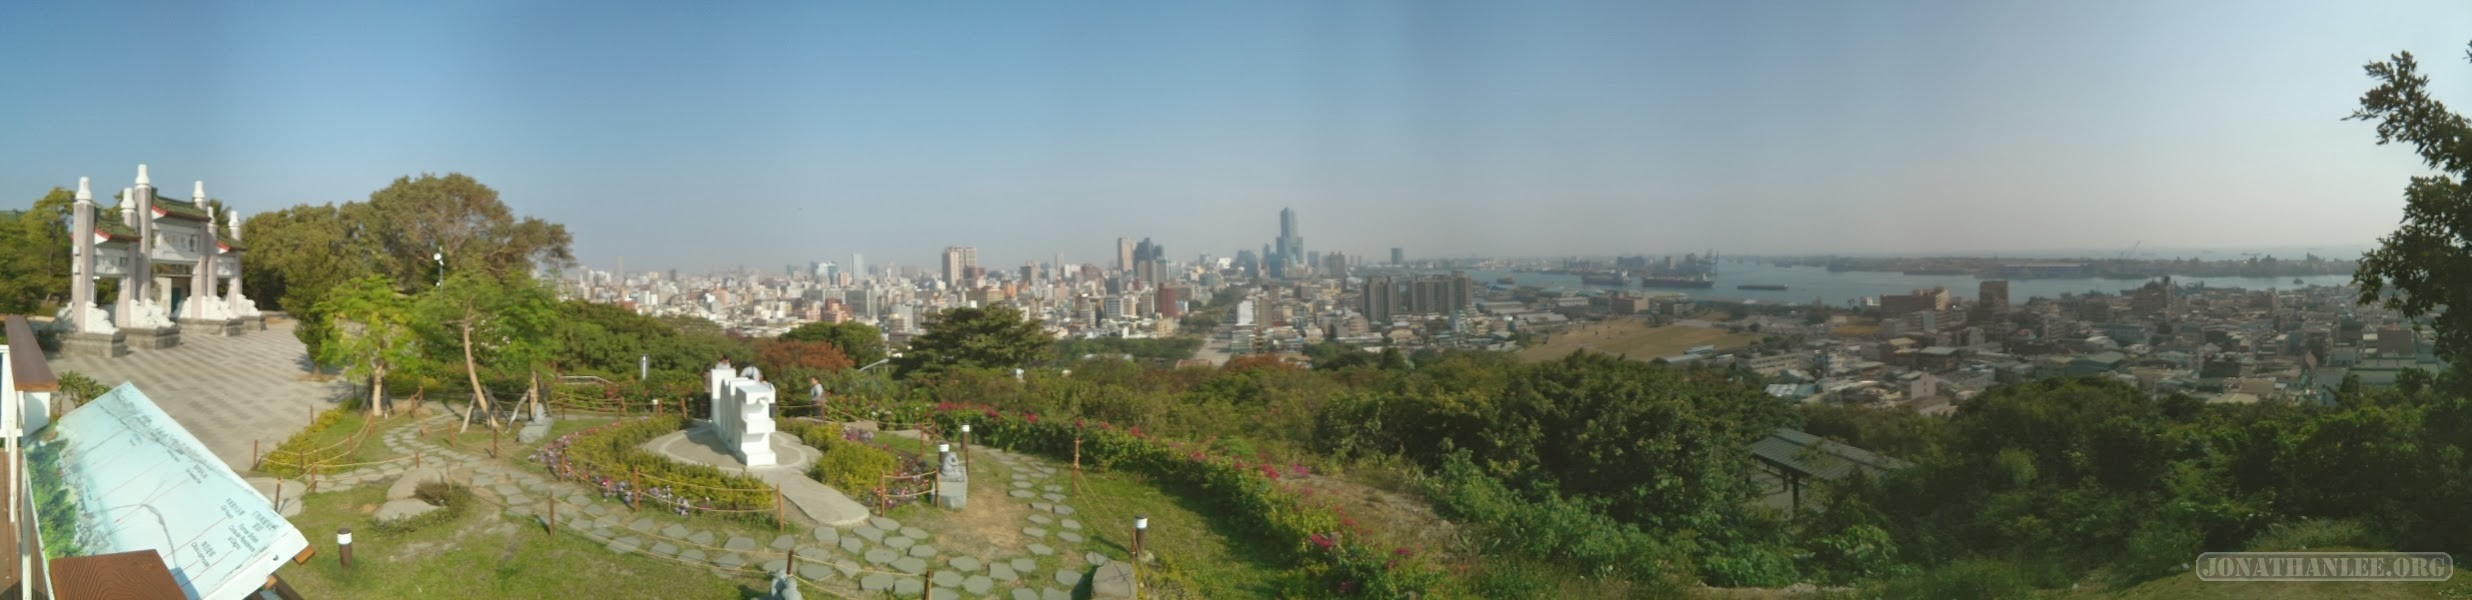 Kaohsiung - panorama martyrs shrine 1